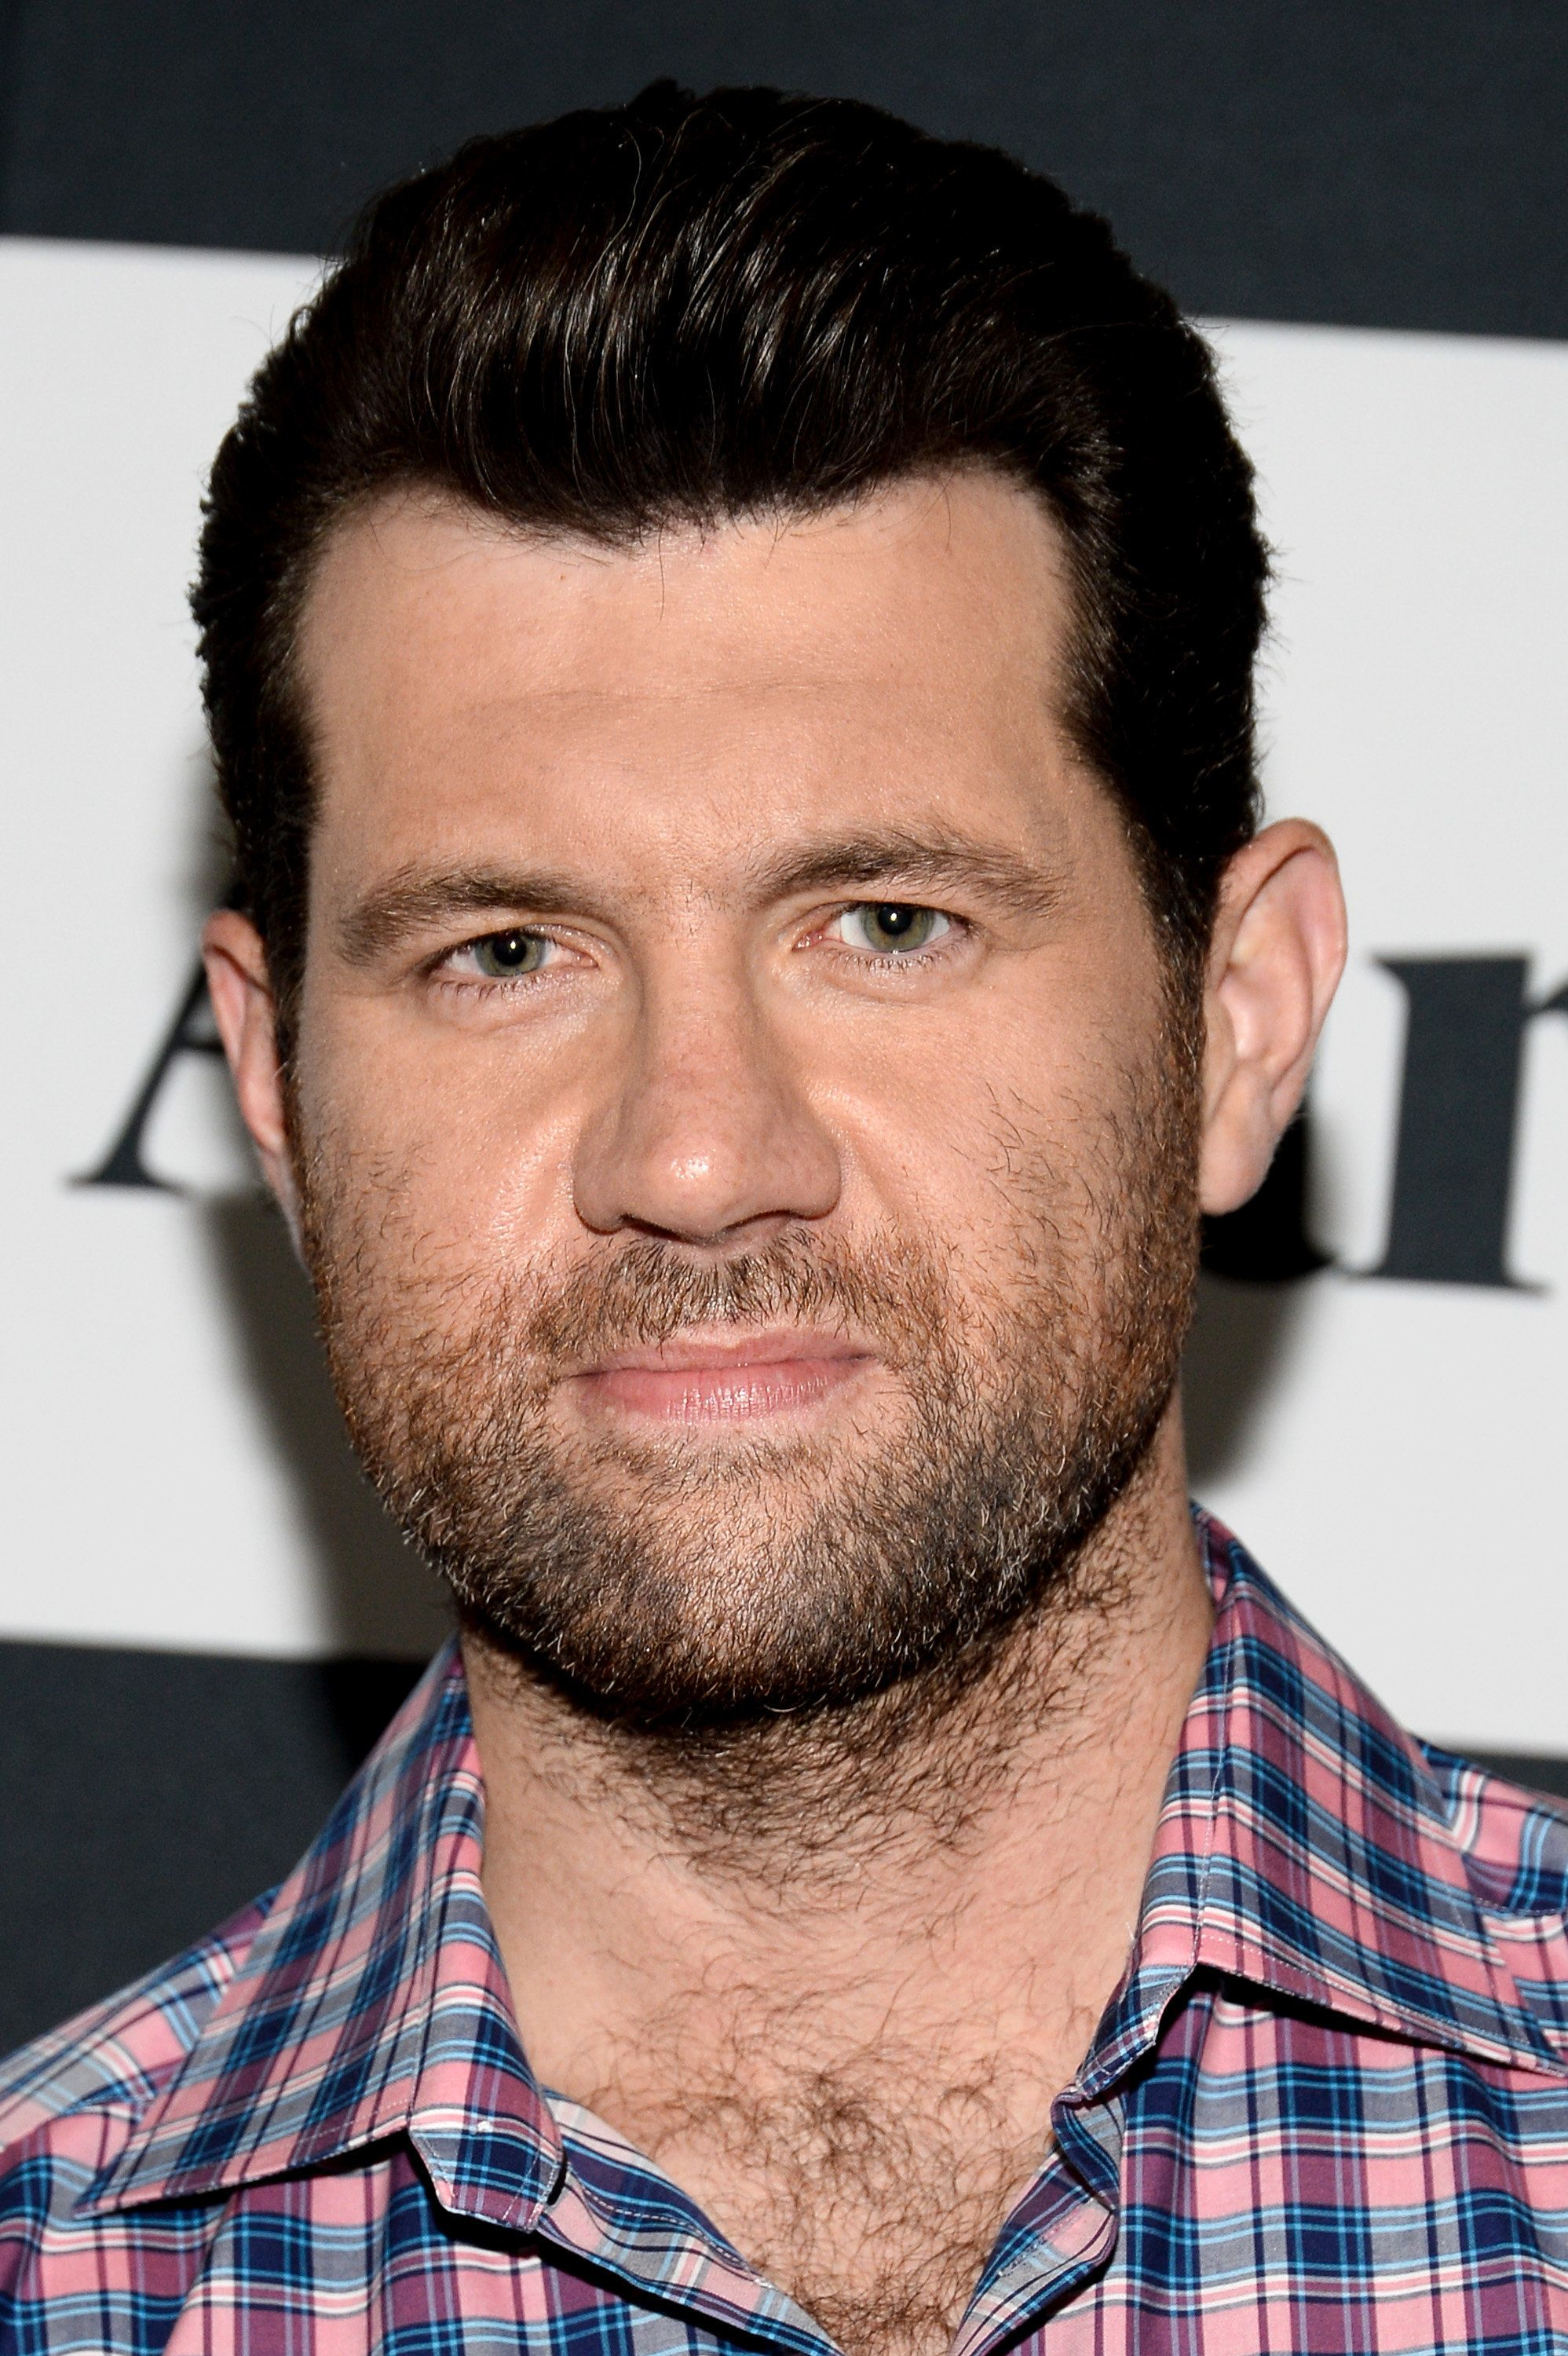 LOS ANGELES, CA - MAY 15:  Comedian Billy Eichner attends a screening for Difficult People's deadline screening series at Landmark Theatre on May 15, 2017 in Los Angeles, California.  (Photo by Tara Ziemba/Getty Images)